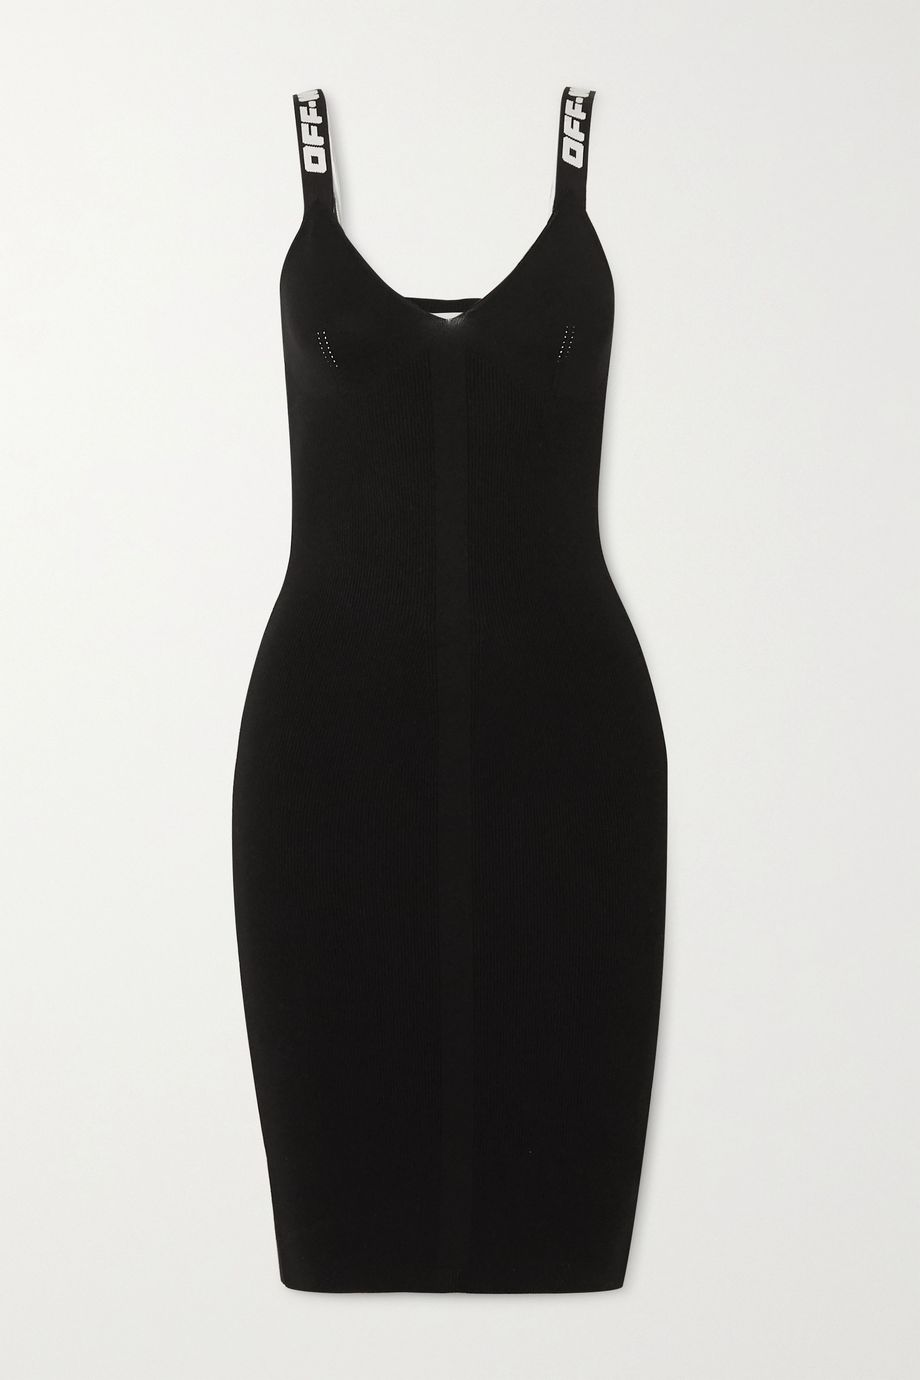 Off-White Canvas-trimmed ribbed-knit dress